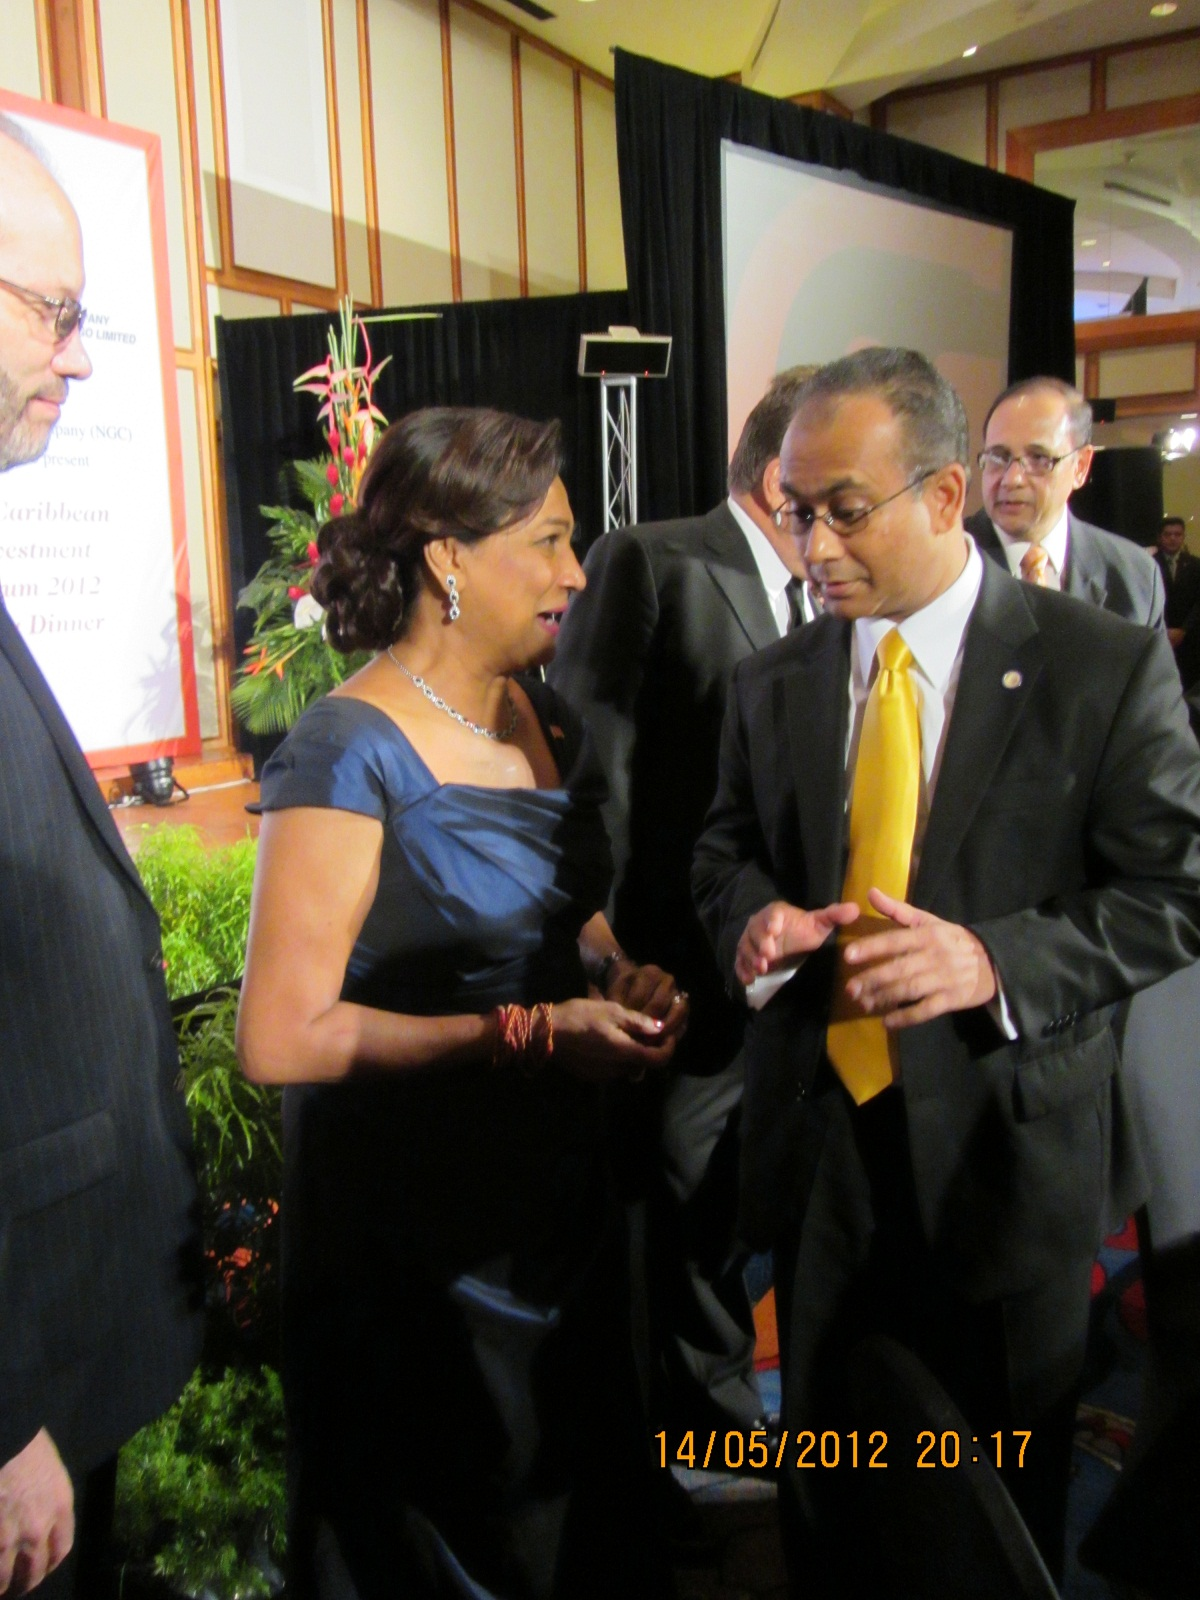 ASG Ramdin chats with Prime Minister Kamla Persad-Bissessar of Trinidad and Tobago